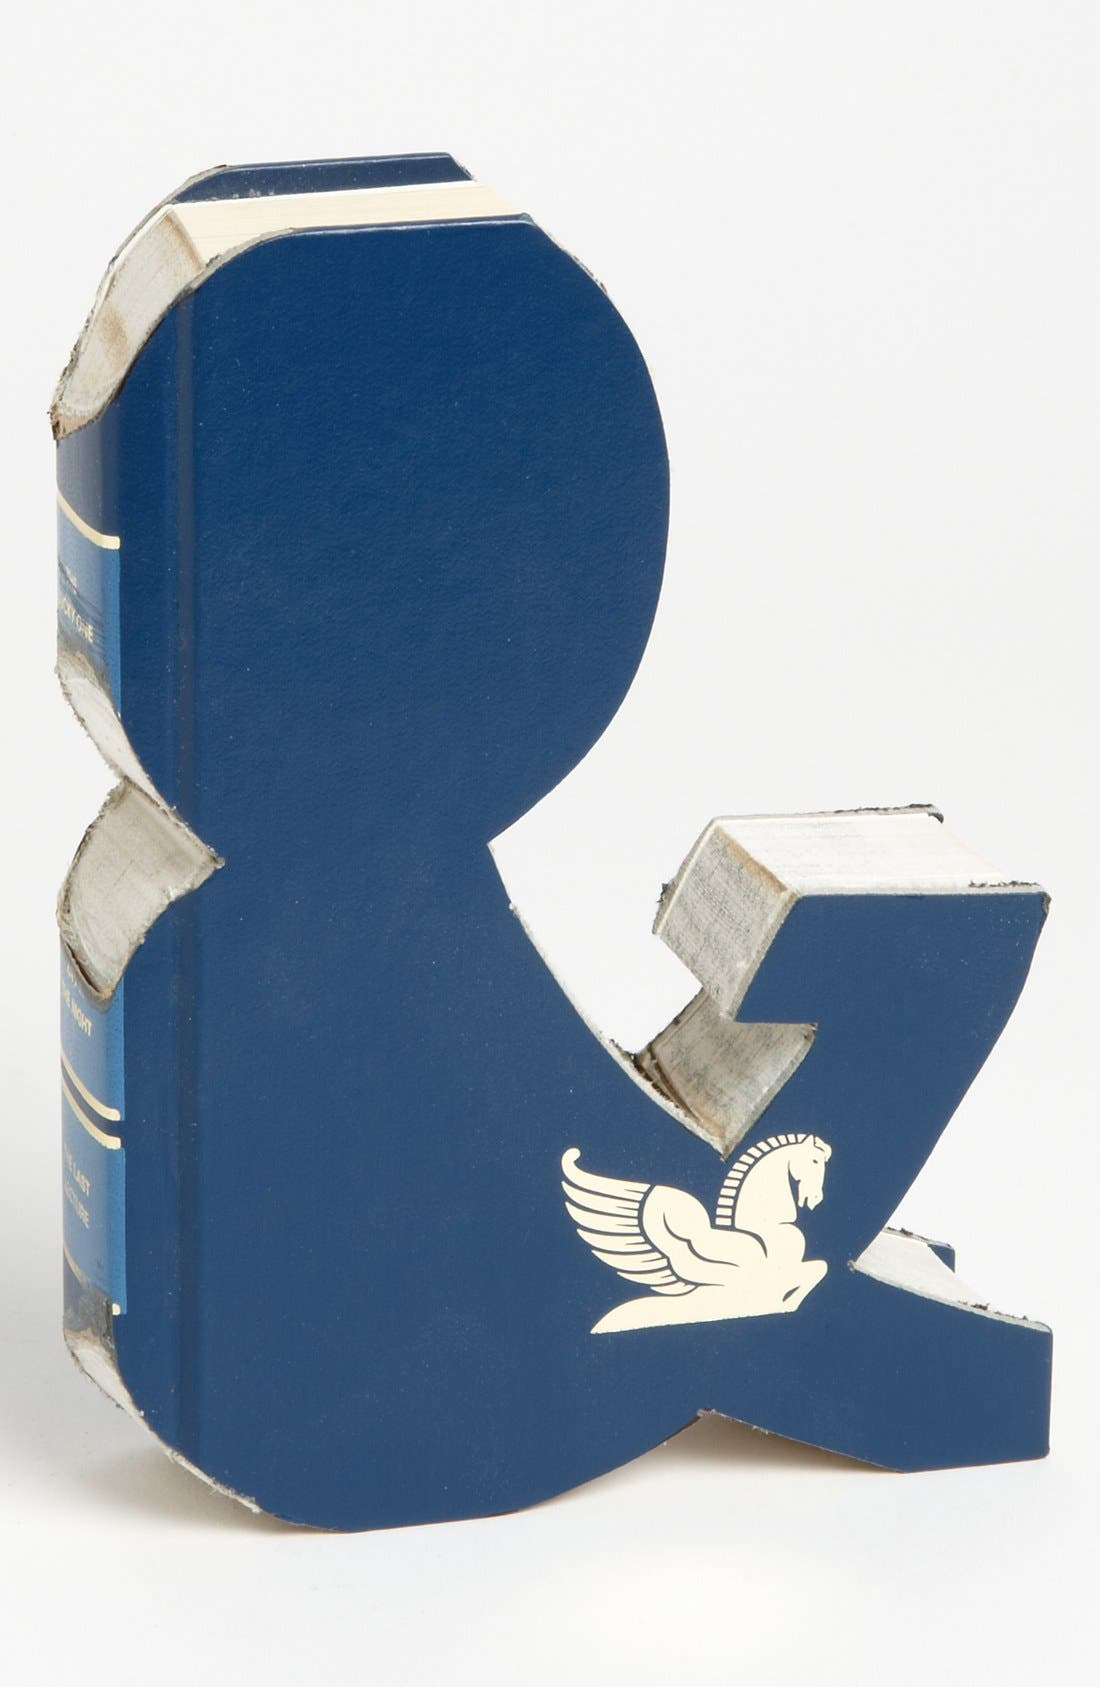 'One of a Kind Letter' Hand-Carved Recycled Book Shelf Art,                             Main thumbnail 24, color,